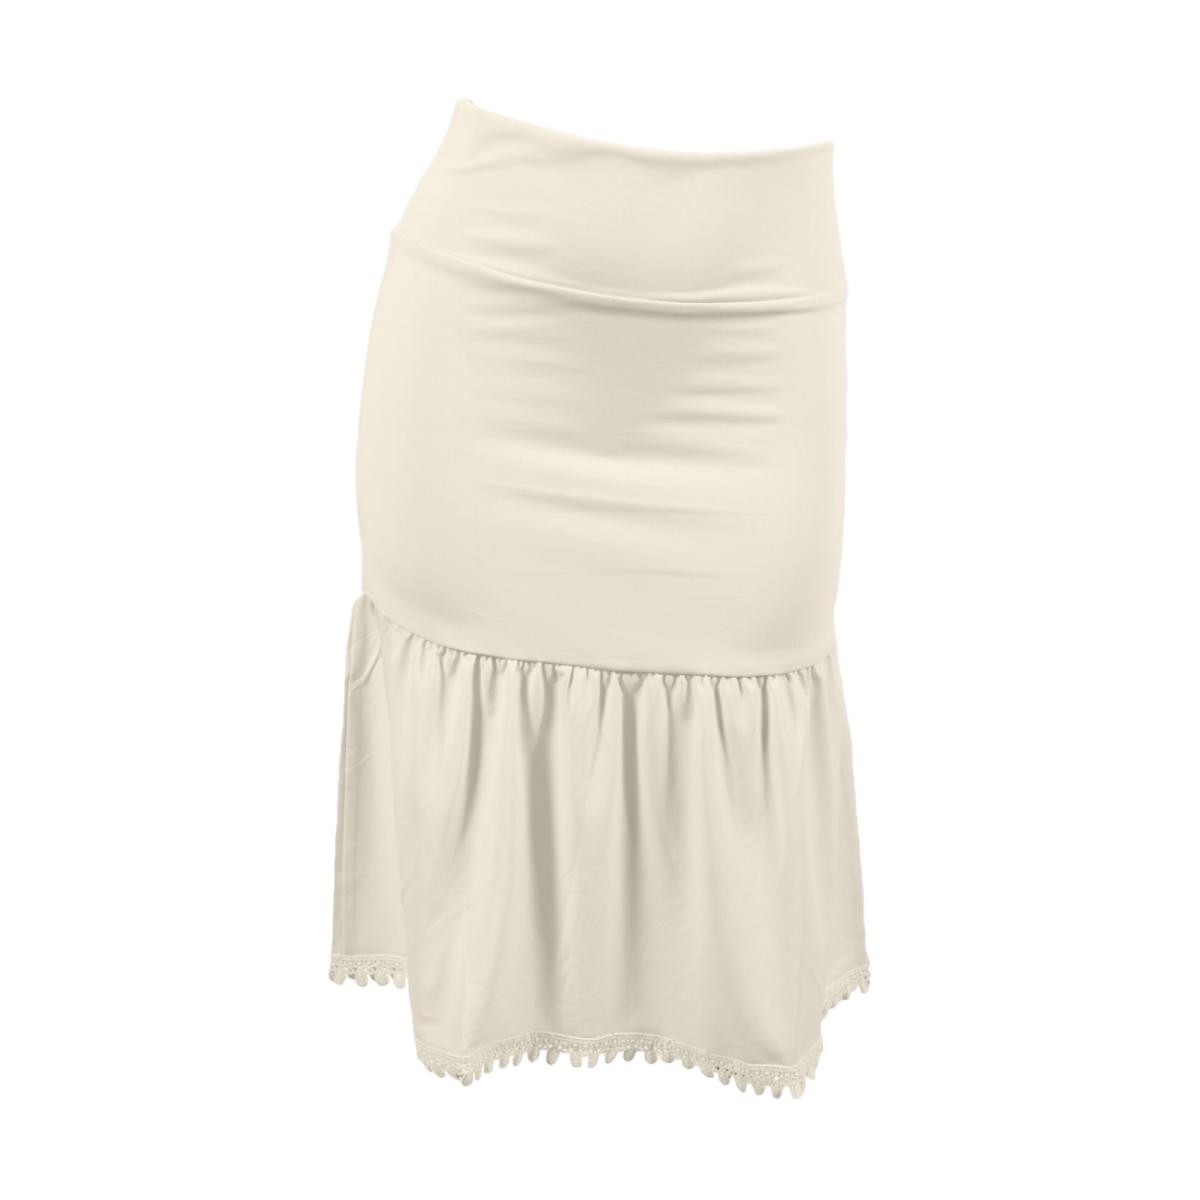 Poppy Half Slip | cream, skirt extenders, Peekaboo Chic | Modest Layering Apparel for women